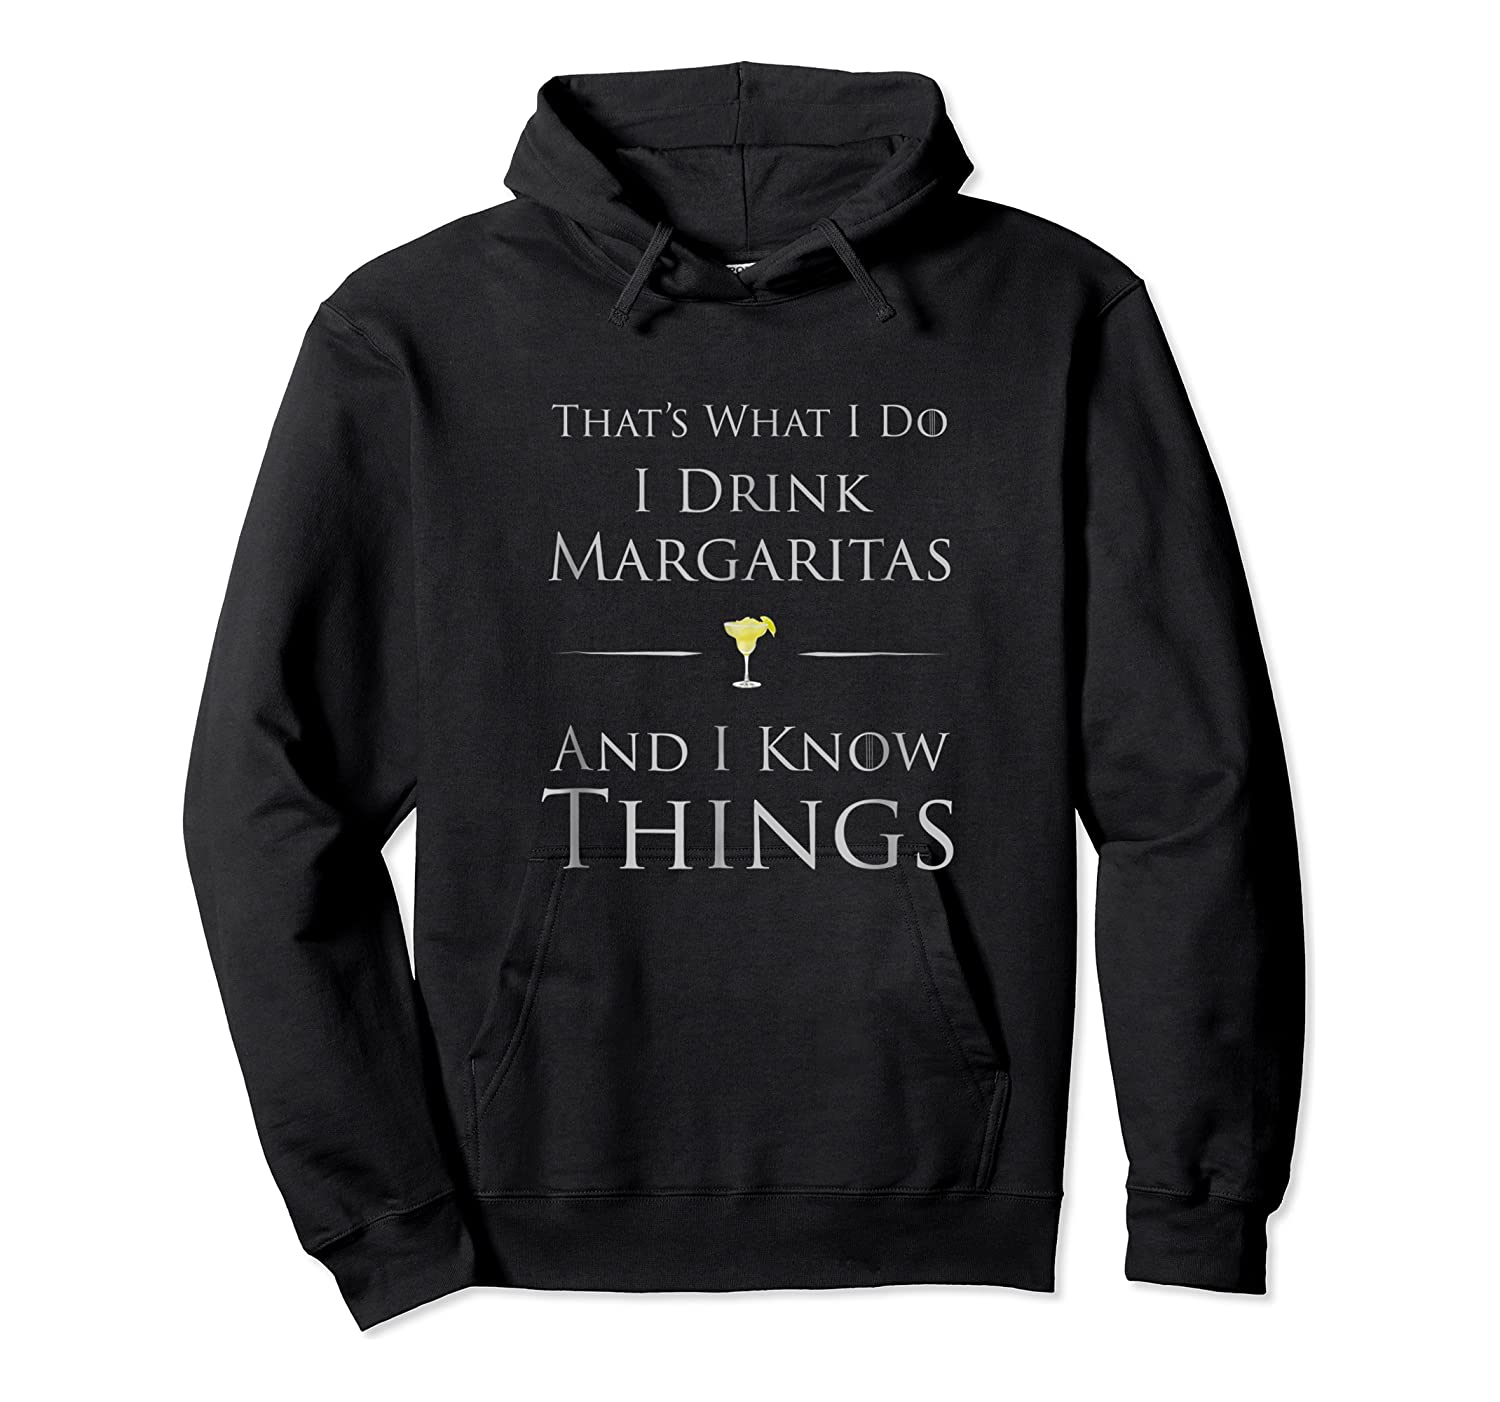 That's What I Do I Drink Margaritas And I Know Things Shirts Unisex Pullover Hoodie